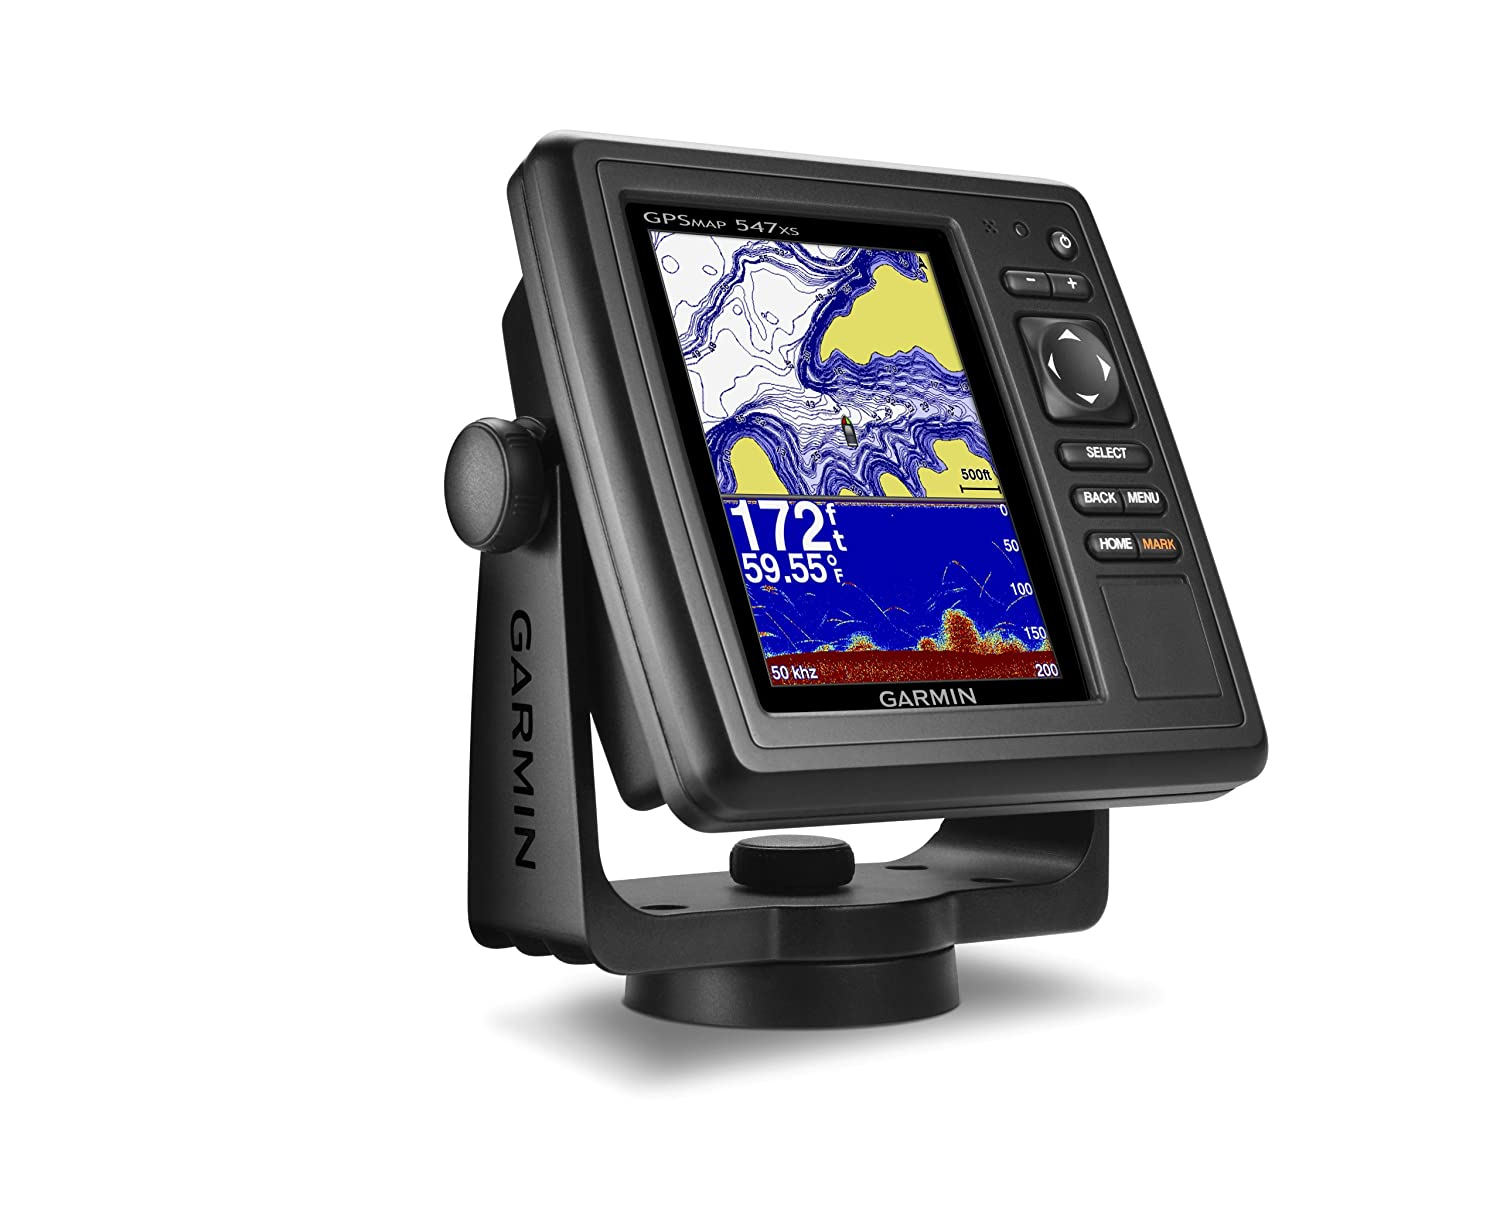 Garmin GPSMAP 547xs 10Hz GPS/GLONASS Receiver without Transducer